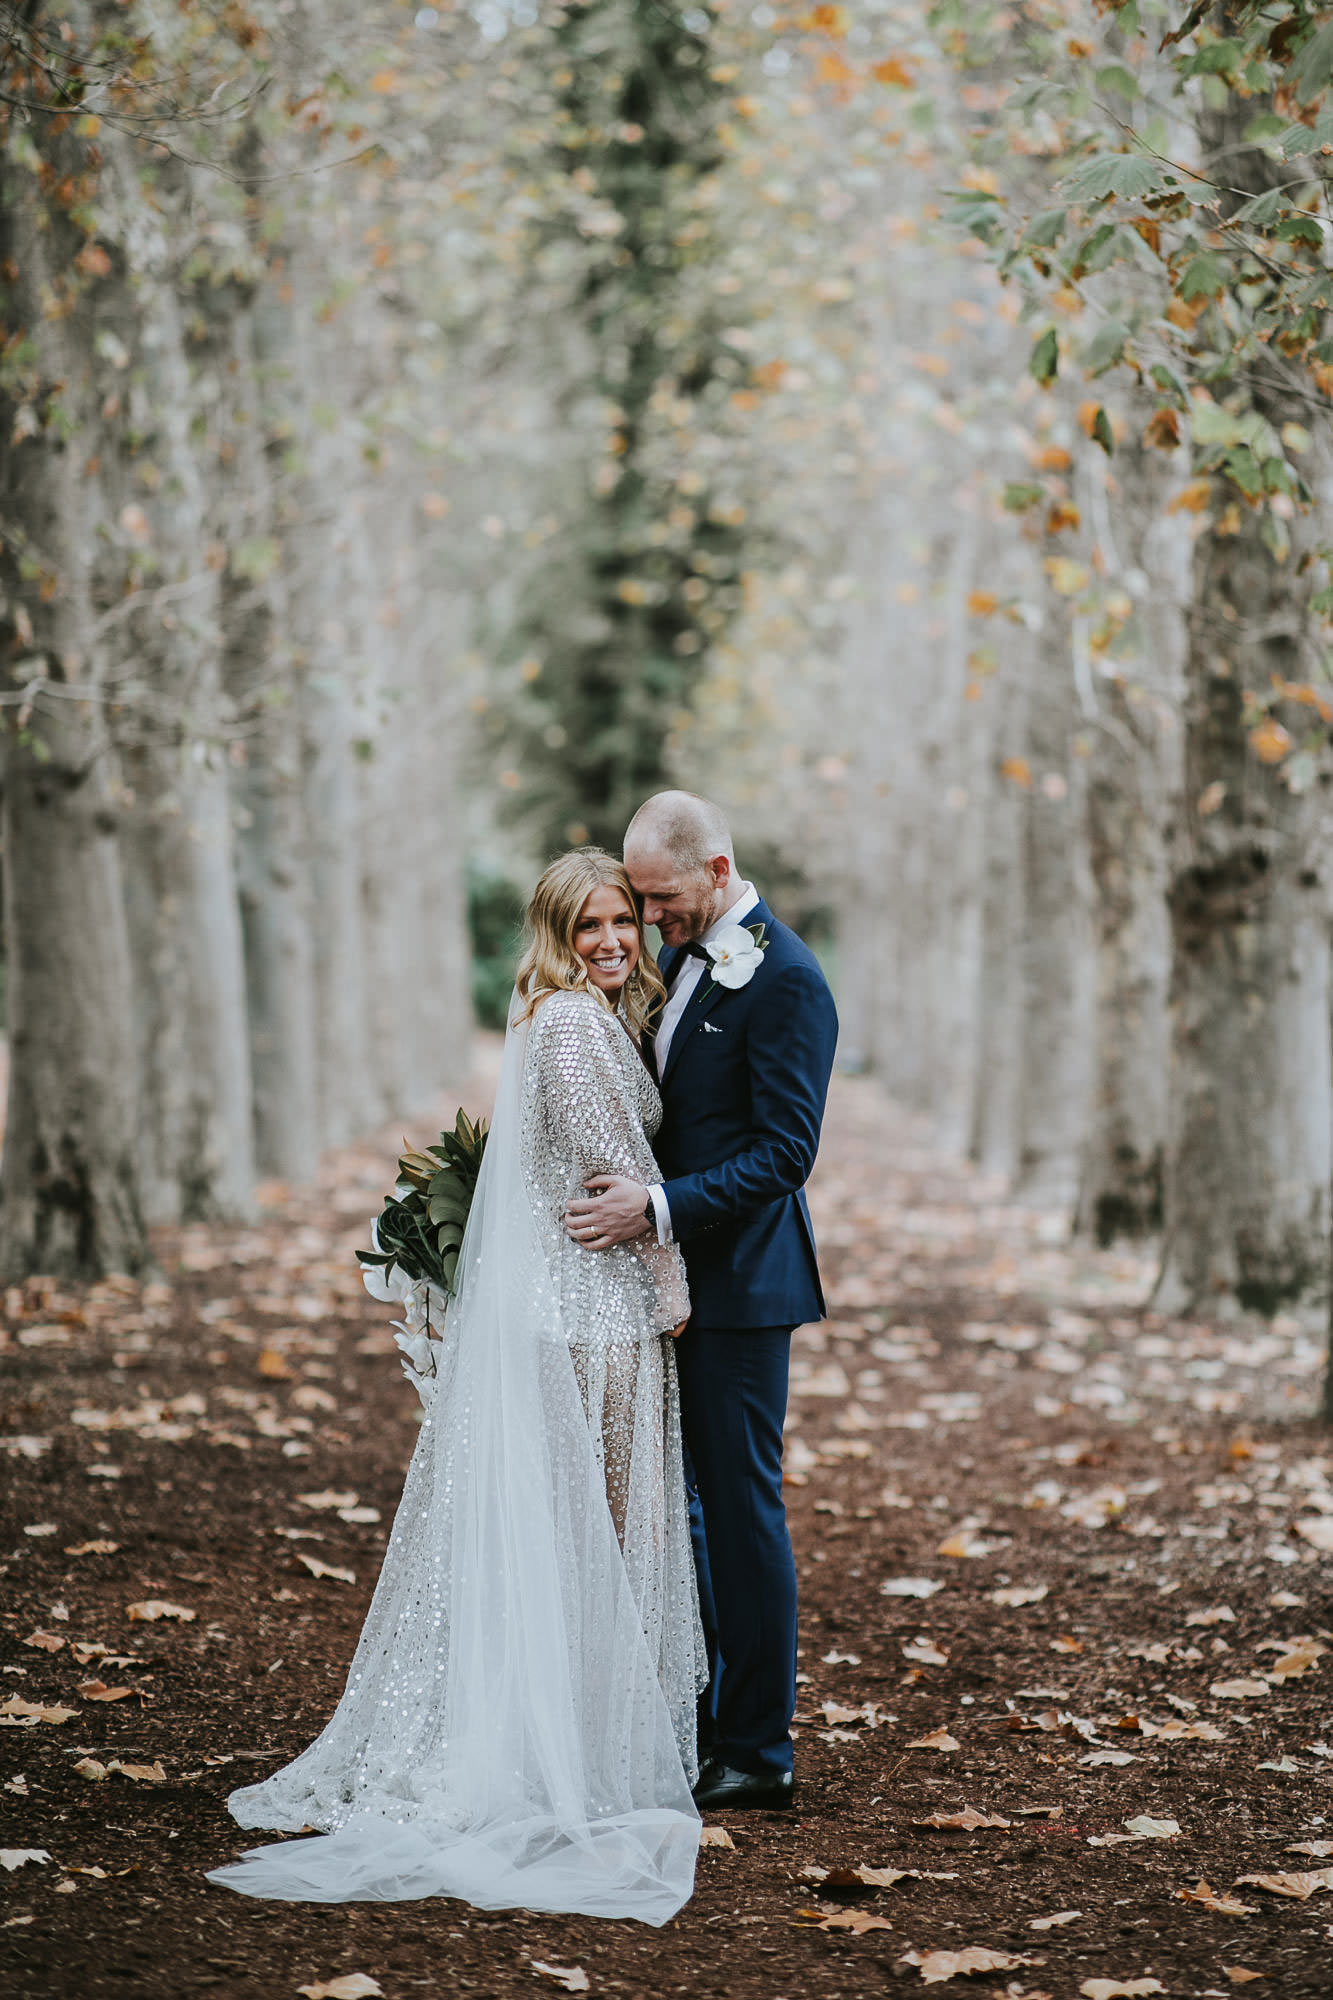 This Day Forward, Sydney Wedding Photographer, boho forrest, one day bridal